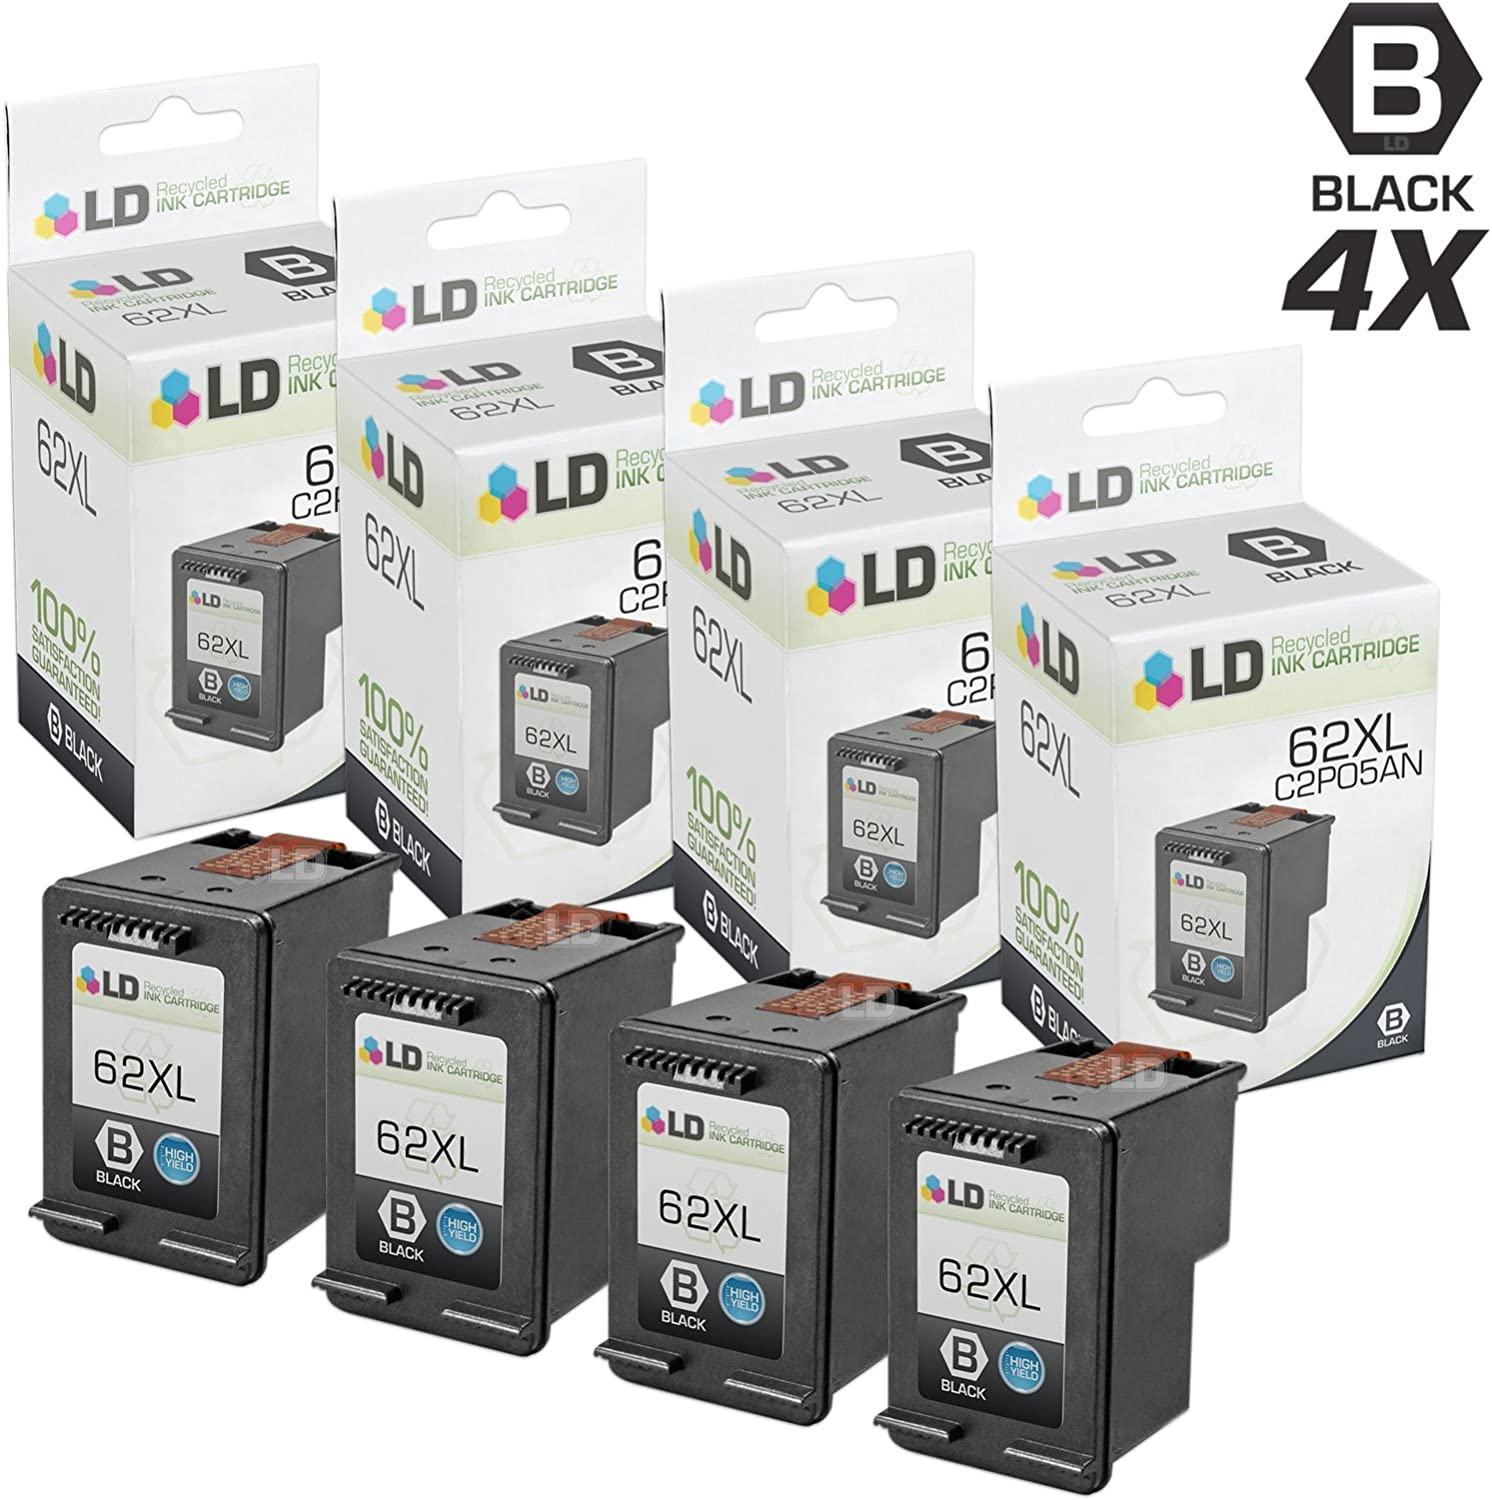 LD Remanufactured Ink Cartridge Replacement for HP 62XL C2P05AN High Yield (Black, 4-Pack)